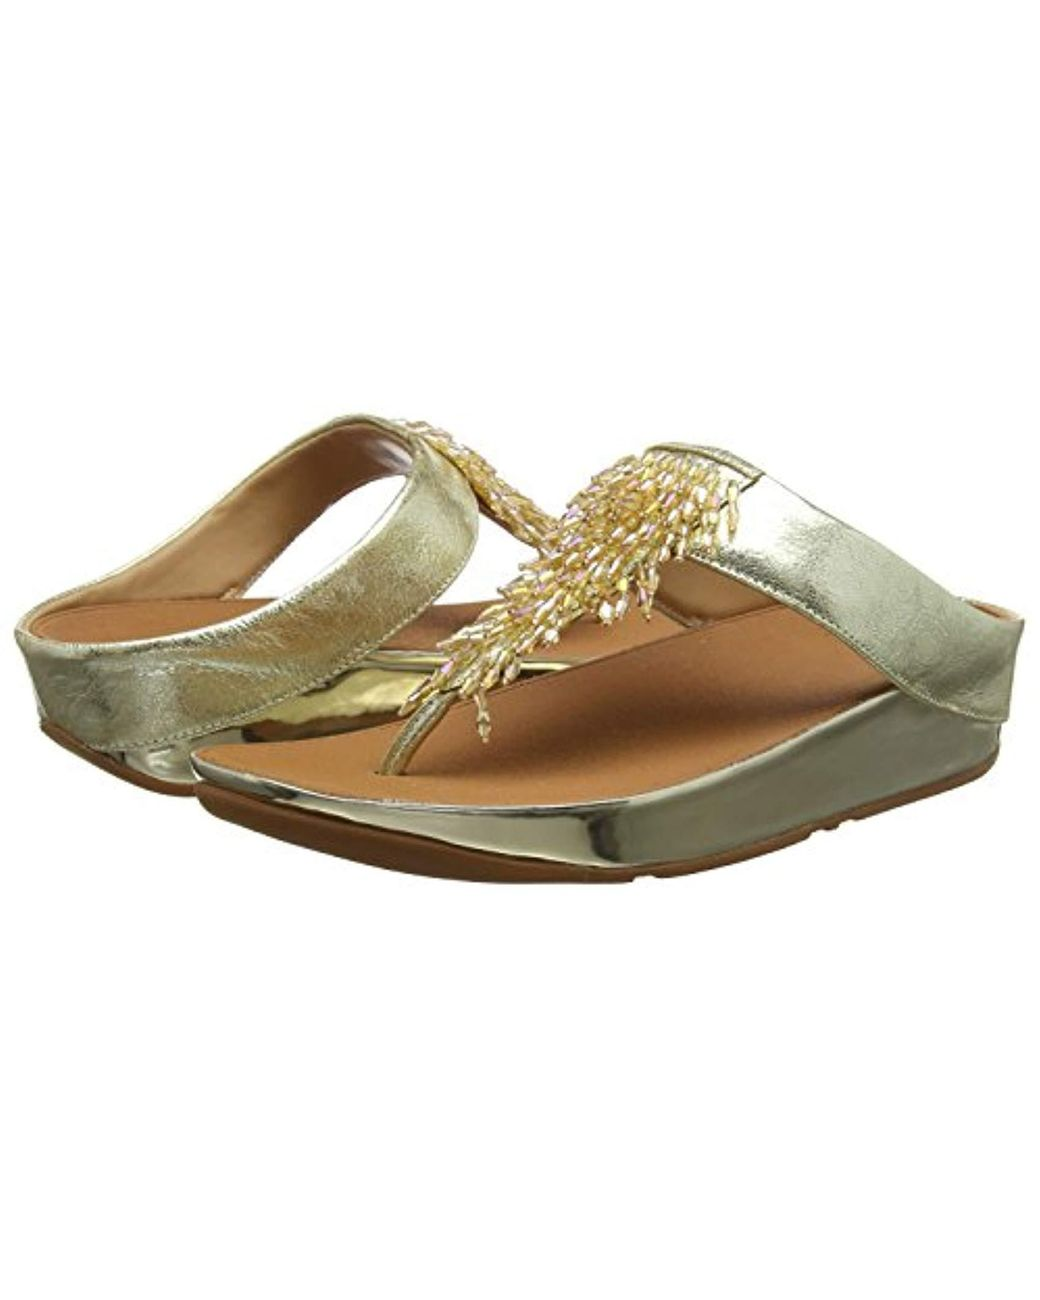 35686491a10b Fitflop Rumba Toe-thong Sandals Flip-flop in Metallic - Lyst